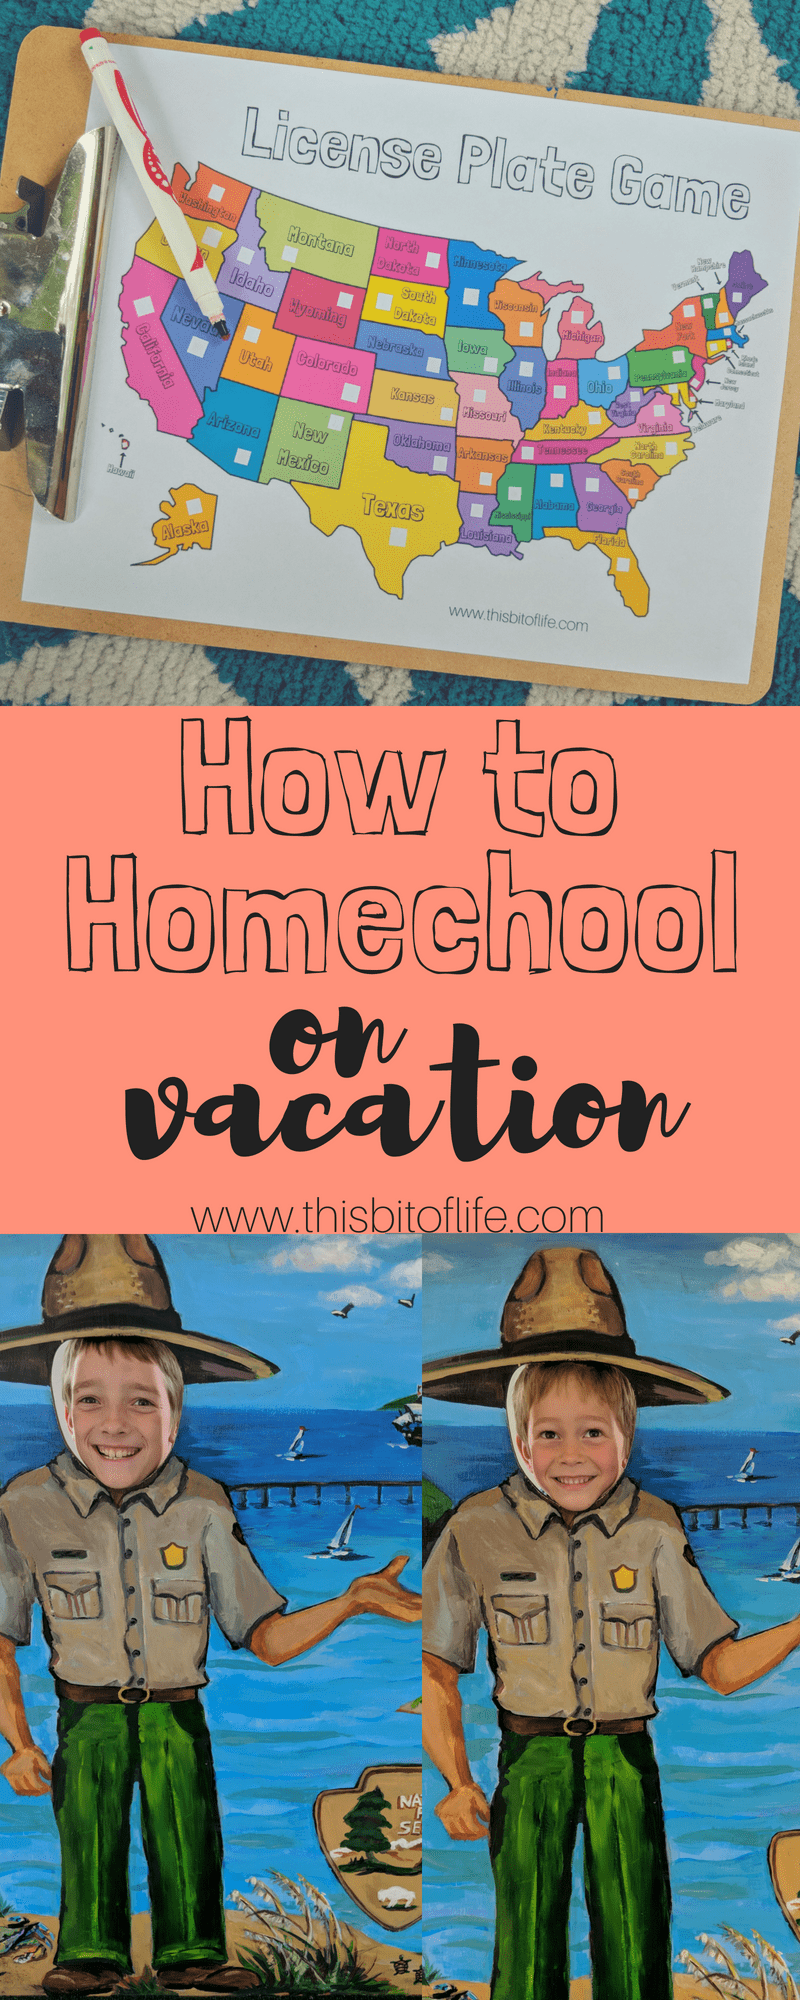 How to Homeschool on Vacation with FREE license plate game printable! #homeschool #homeschooling #roadschooling #licenseplategame #roadtrip #freeprintable